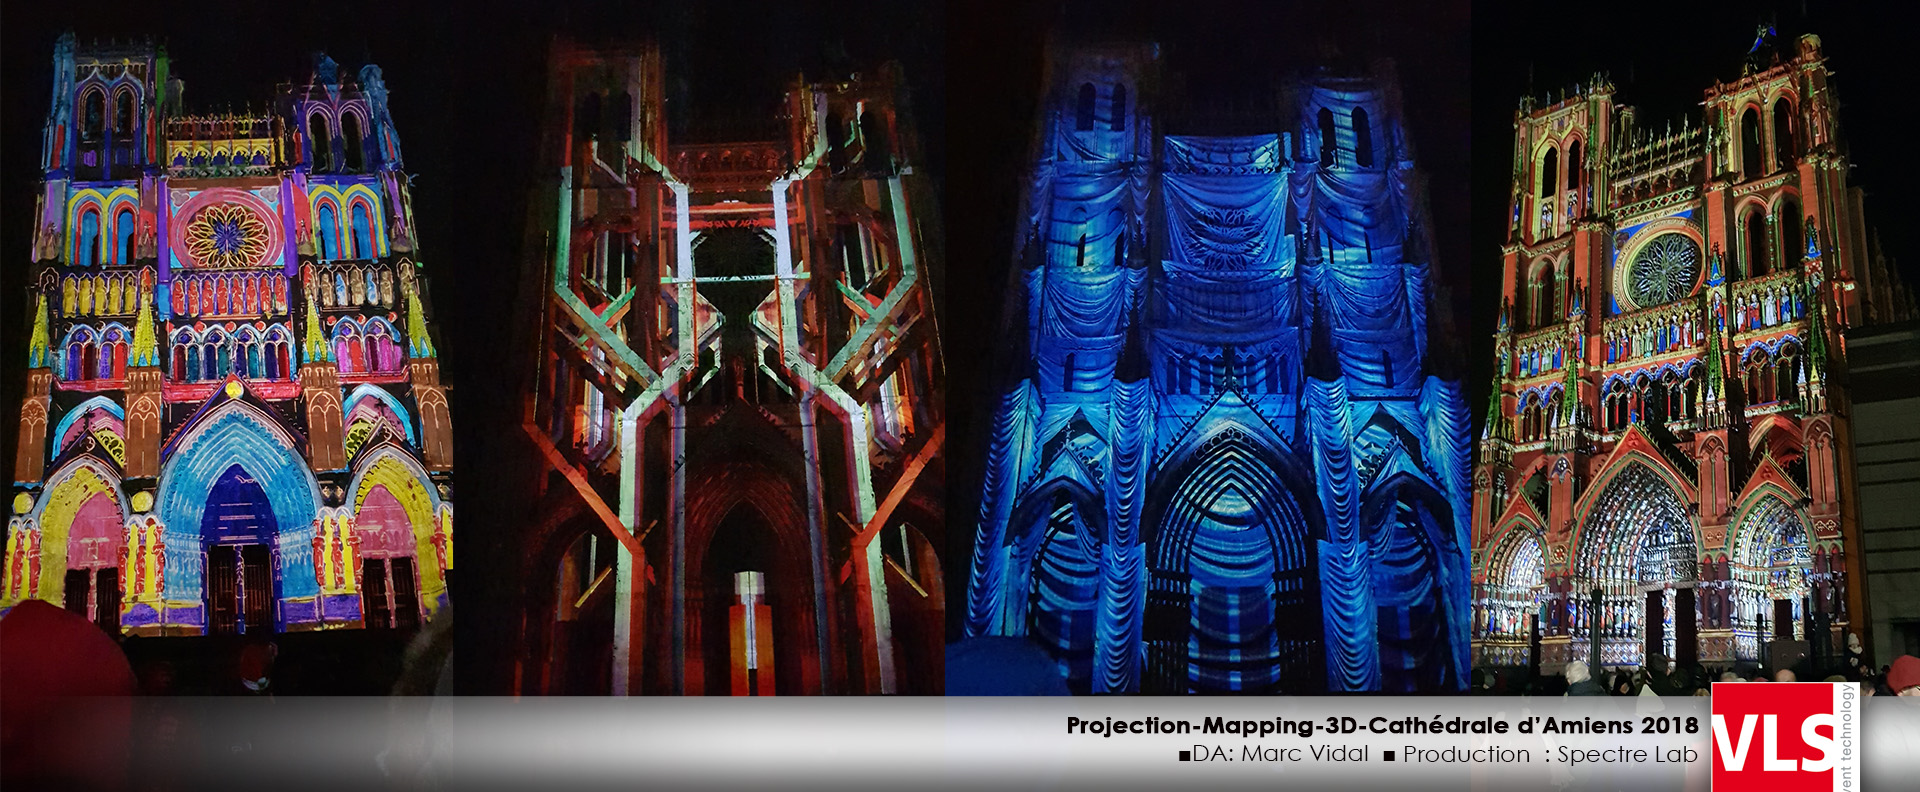 Mapping-3D-Cathédrale-d-Amiens-2018